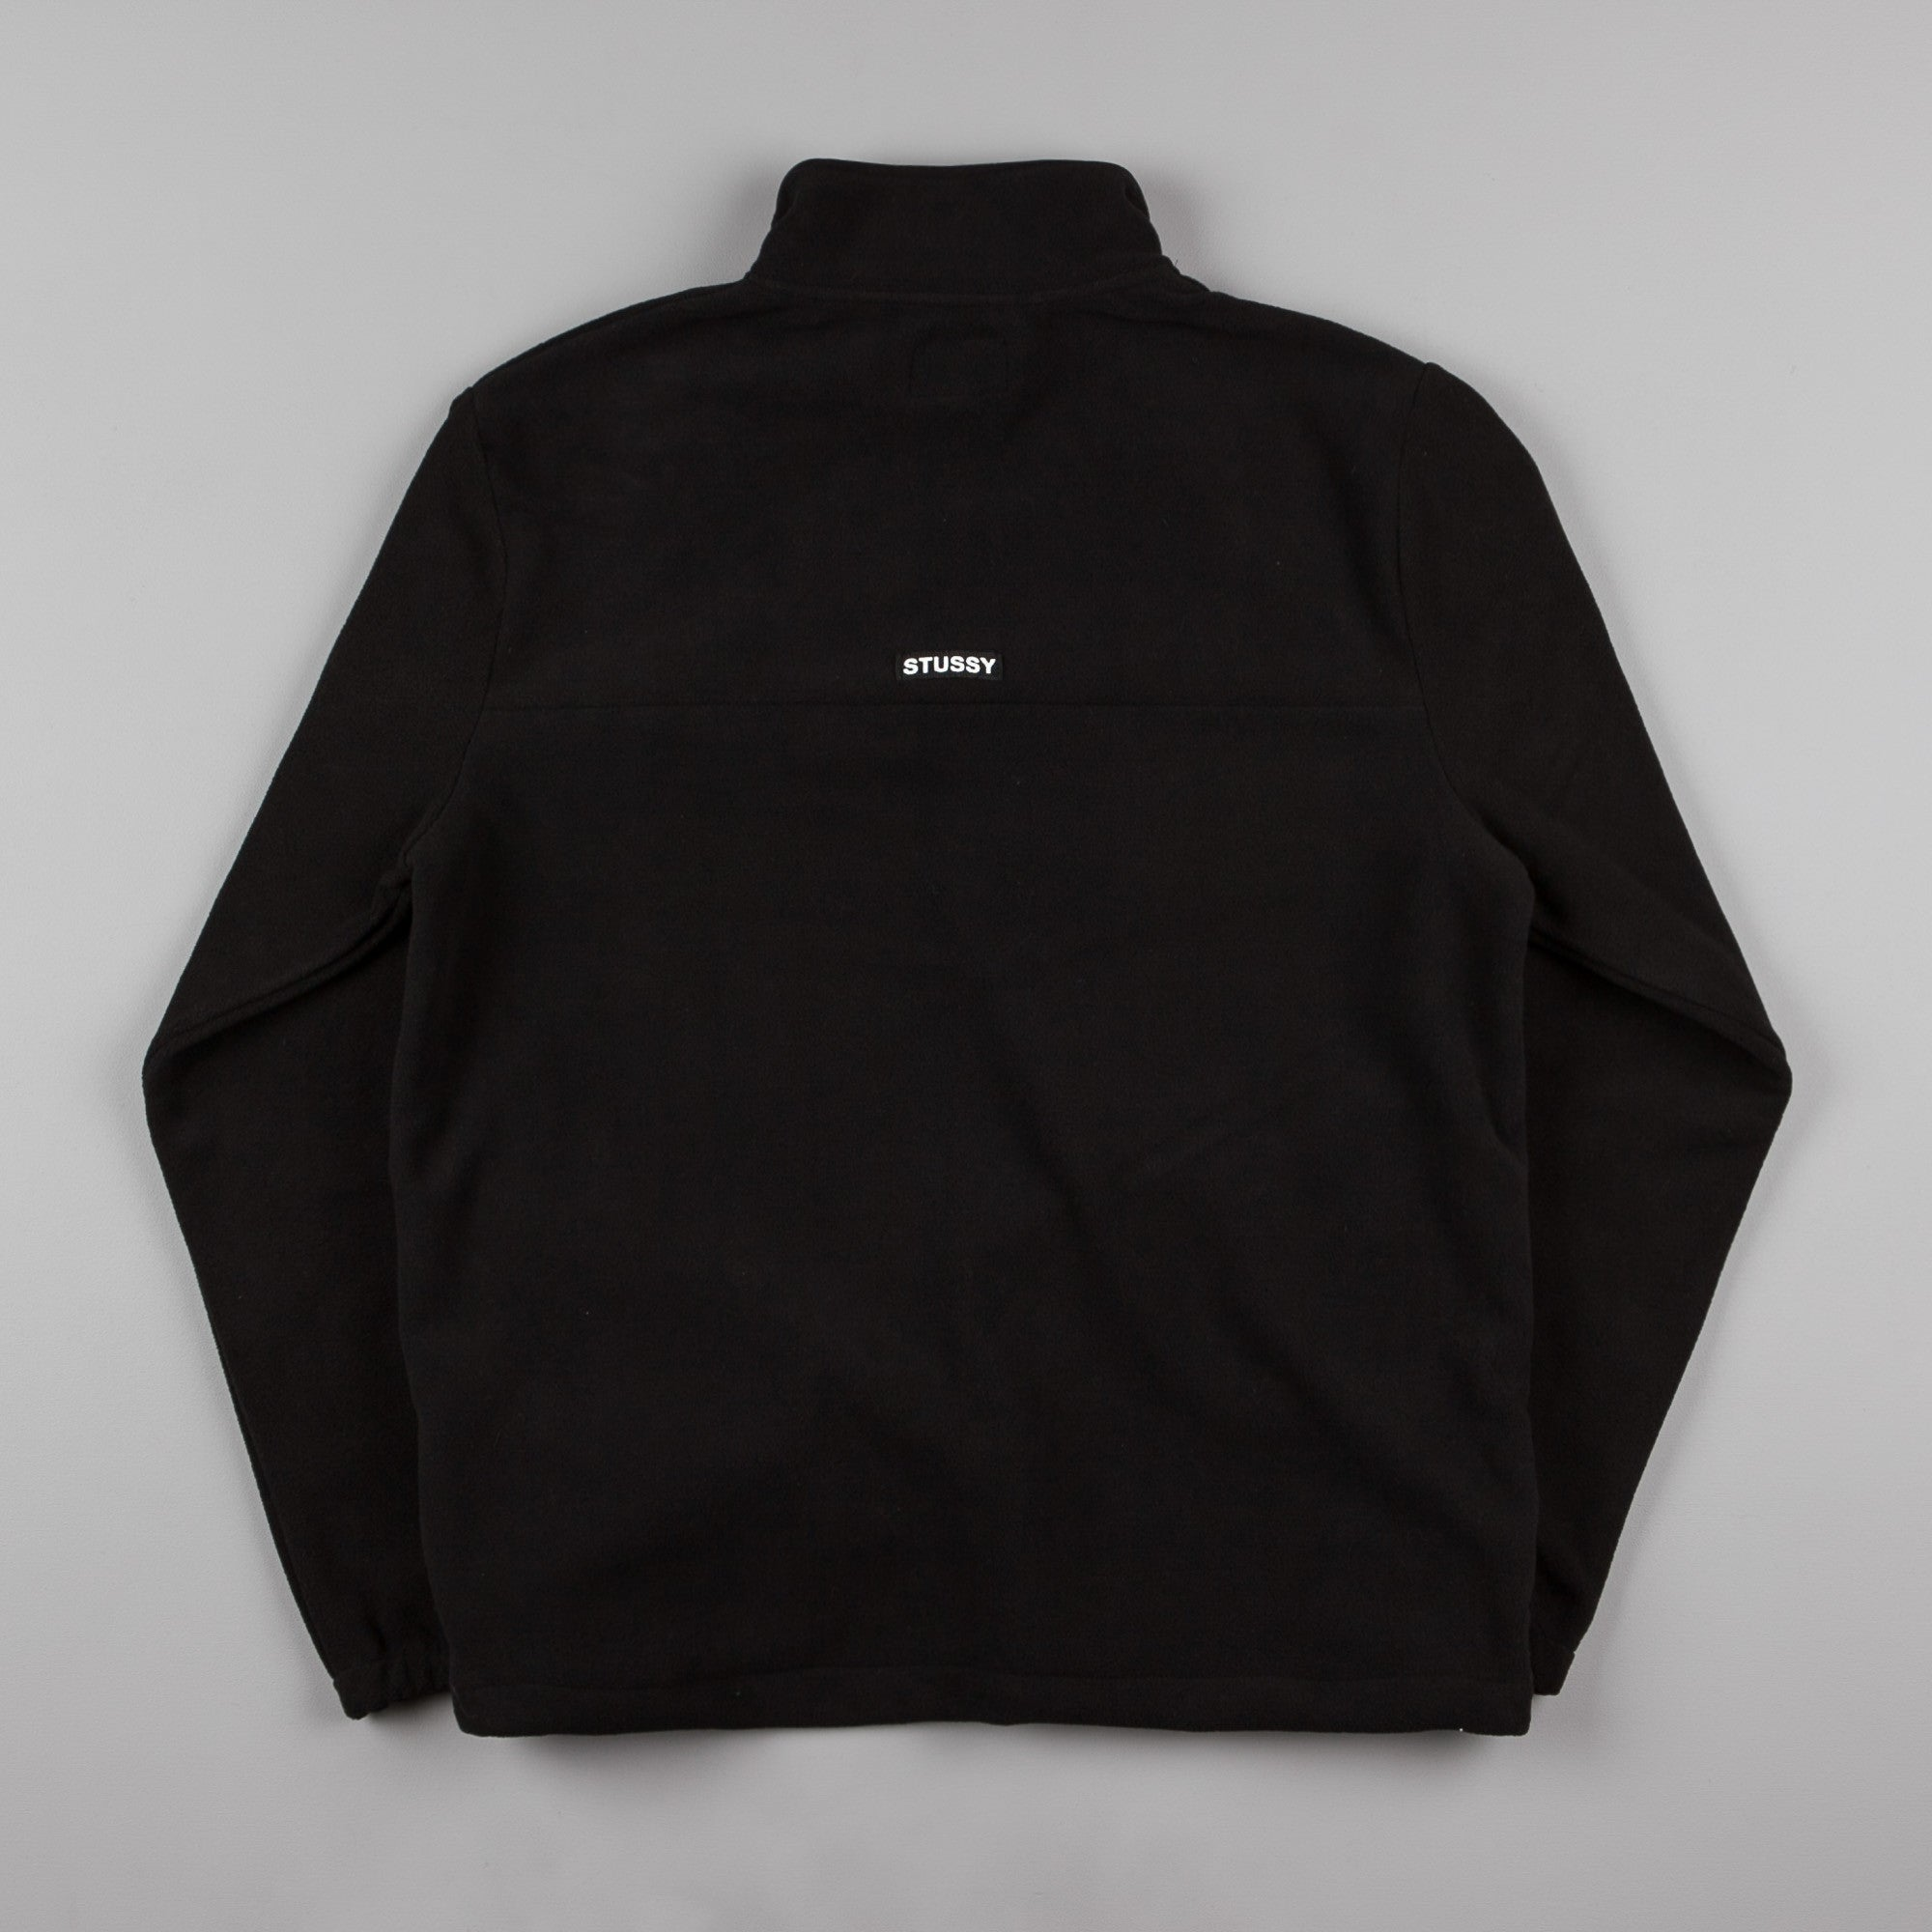 Stussy Logo Tape Mock Neck Sweatshirt - Black